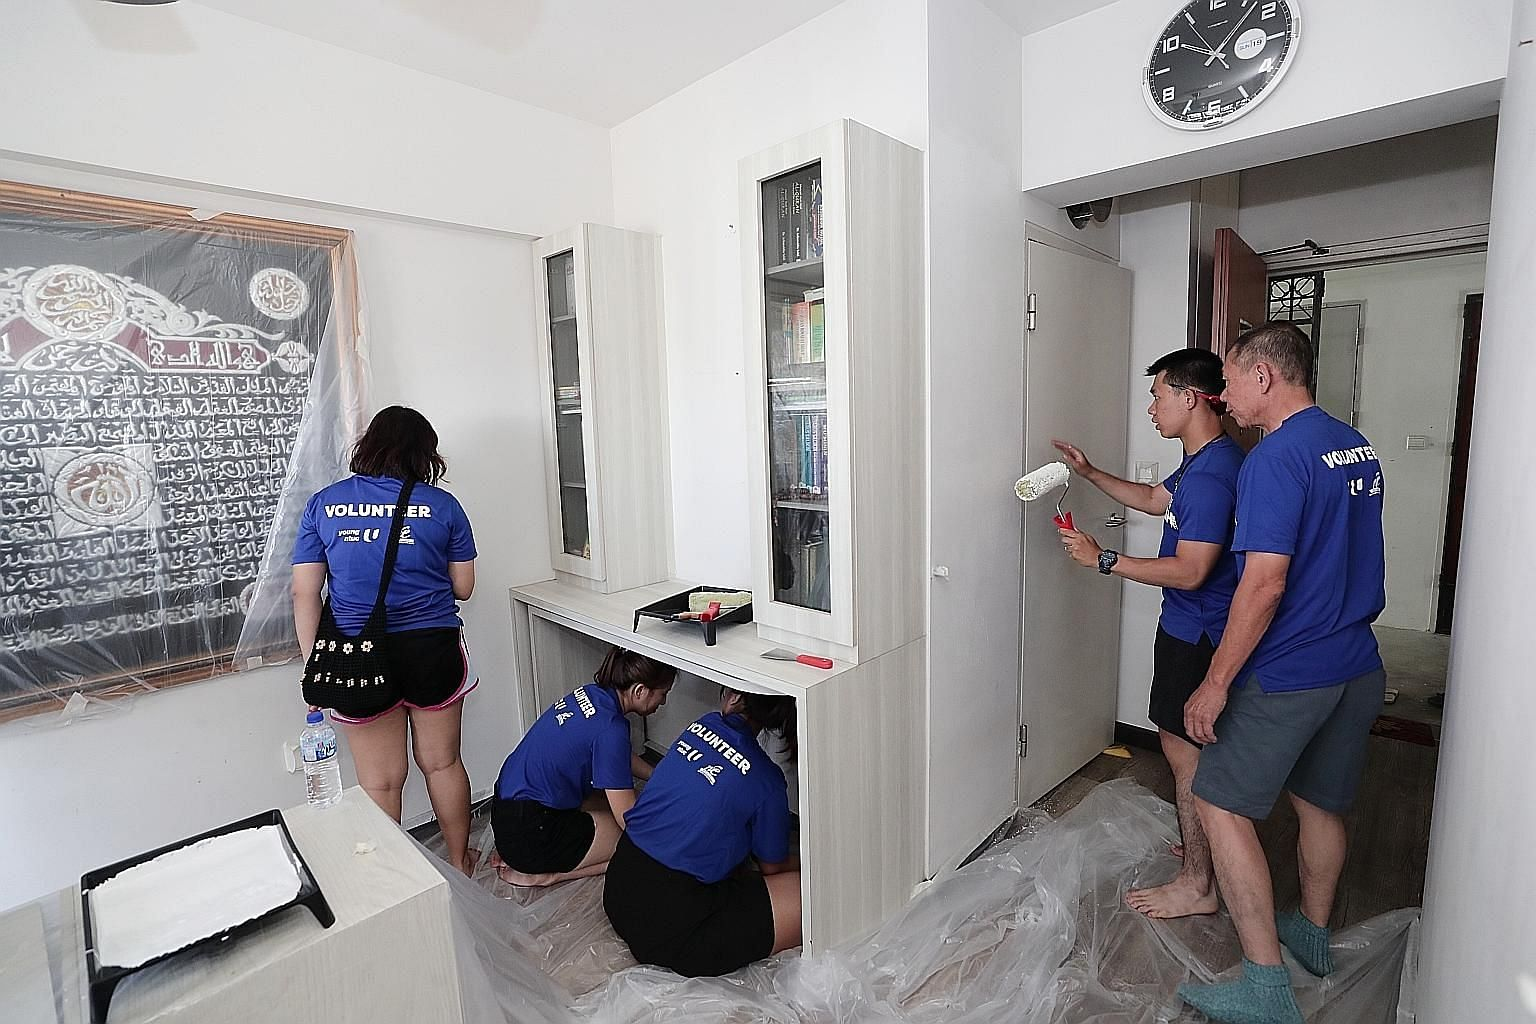 Volunteers at work in the home of a Tampines resident yesterday. It was part of an initiative called Project Refresh, which aims to encourage people of all ages to volunteer.